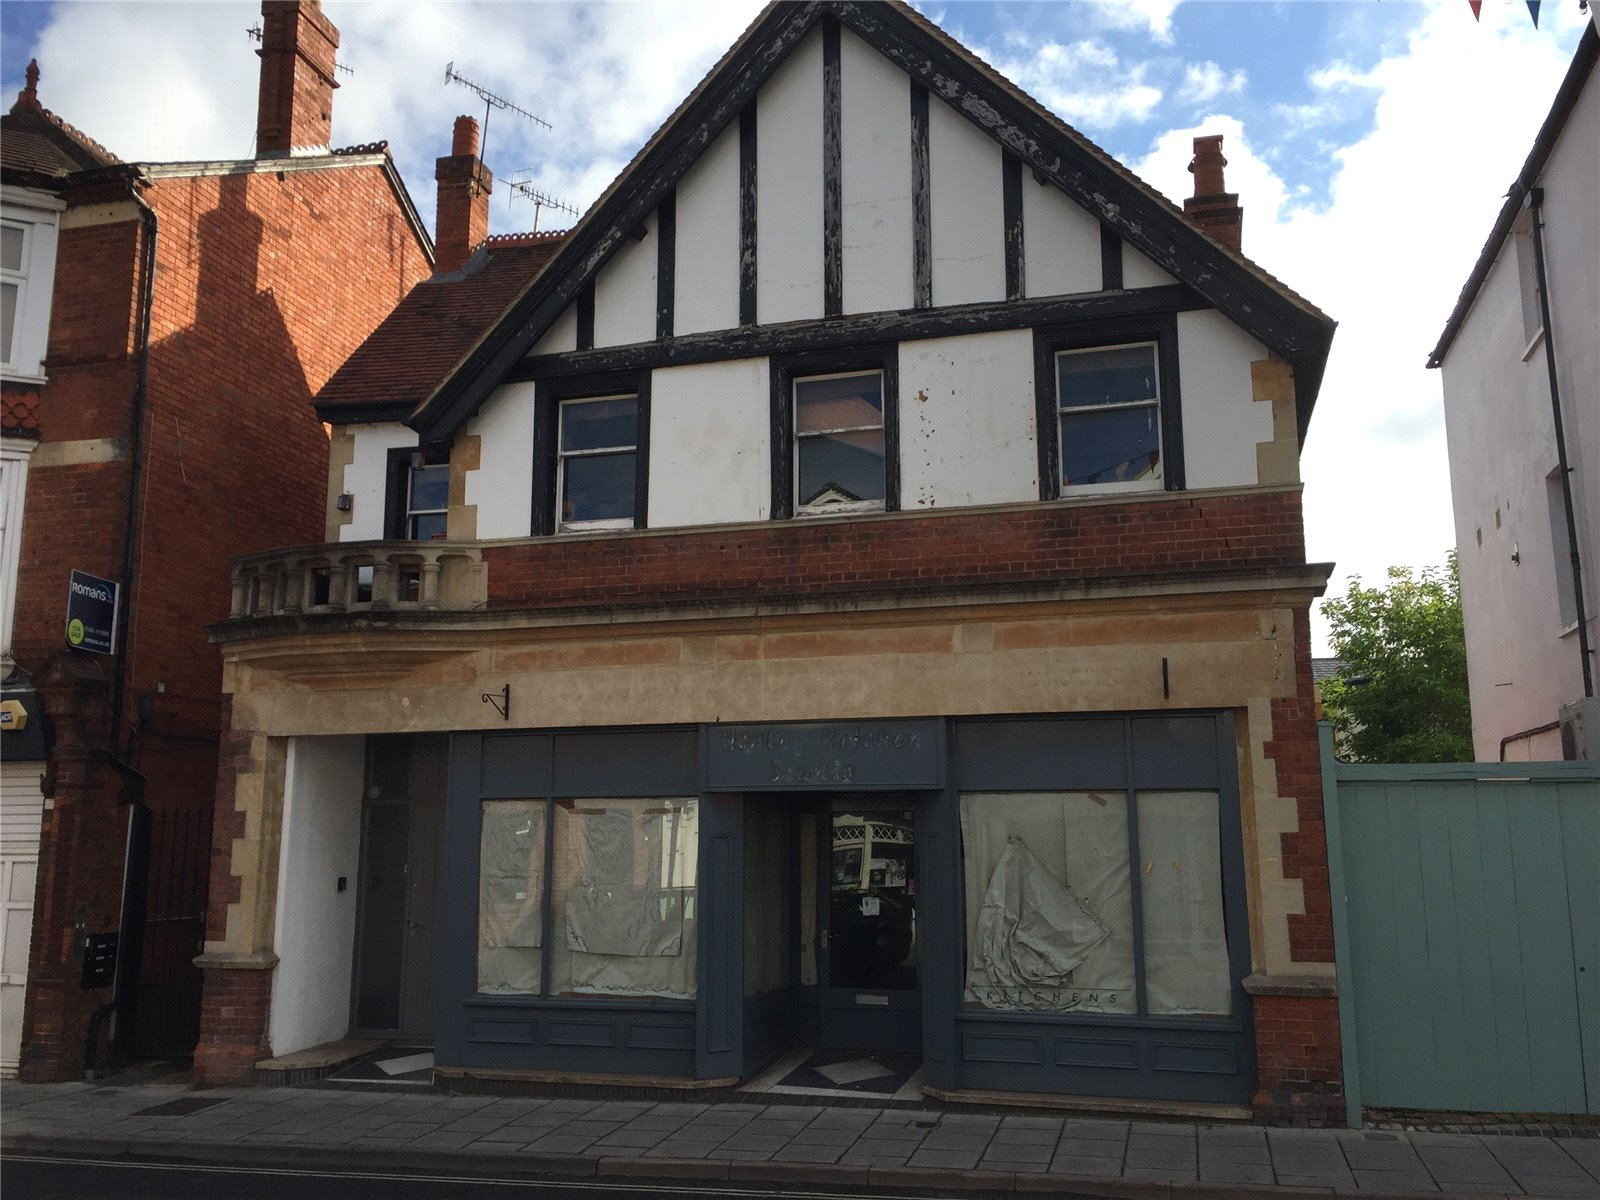 Retail Property (high Street) Commercial for sale in Reading Road, Henley-on-Thames, RG9